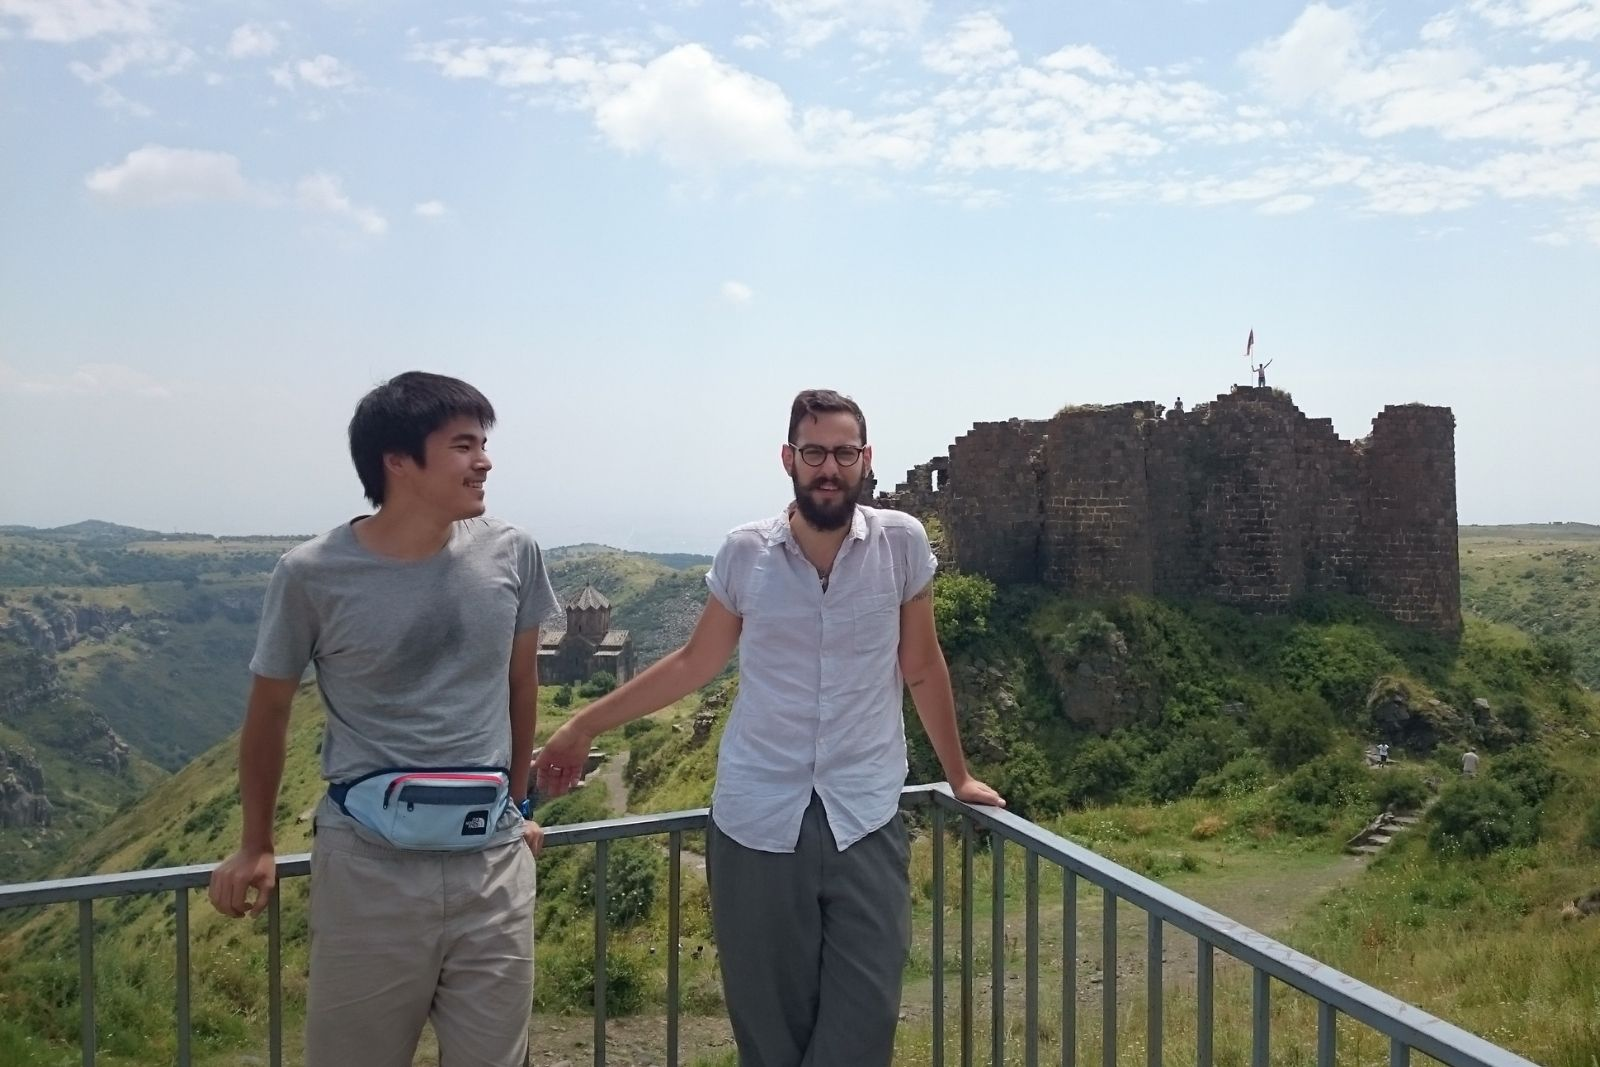 Armenian Studies summer school 2016 participants at Amberd fortress